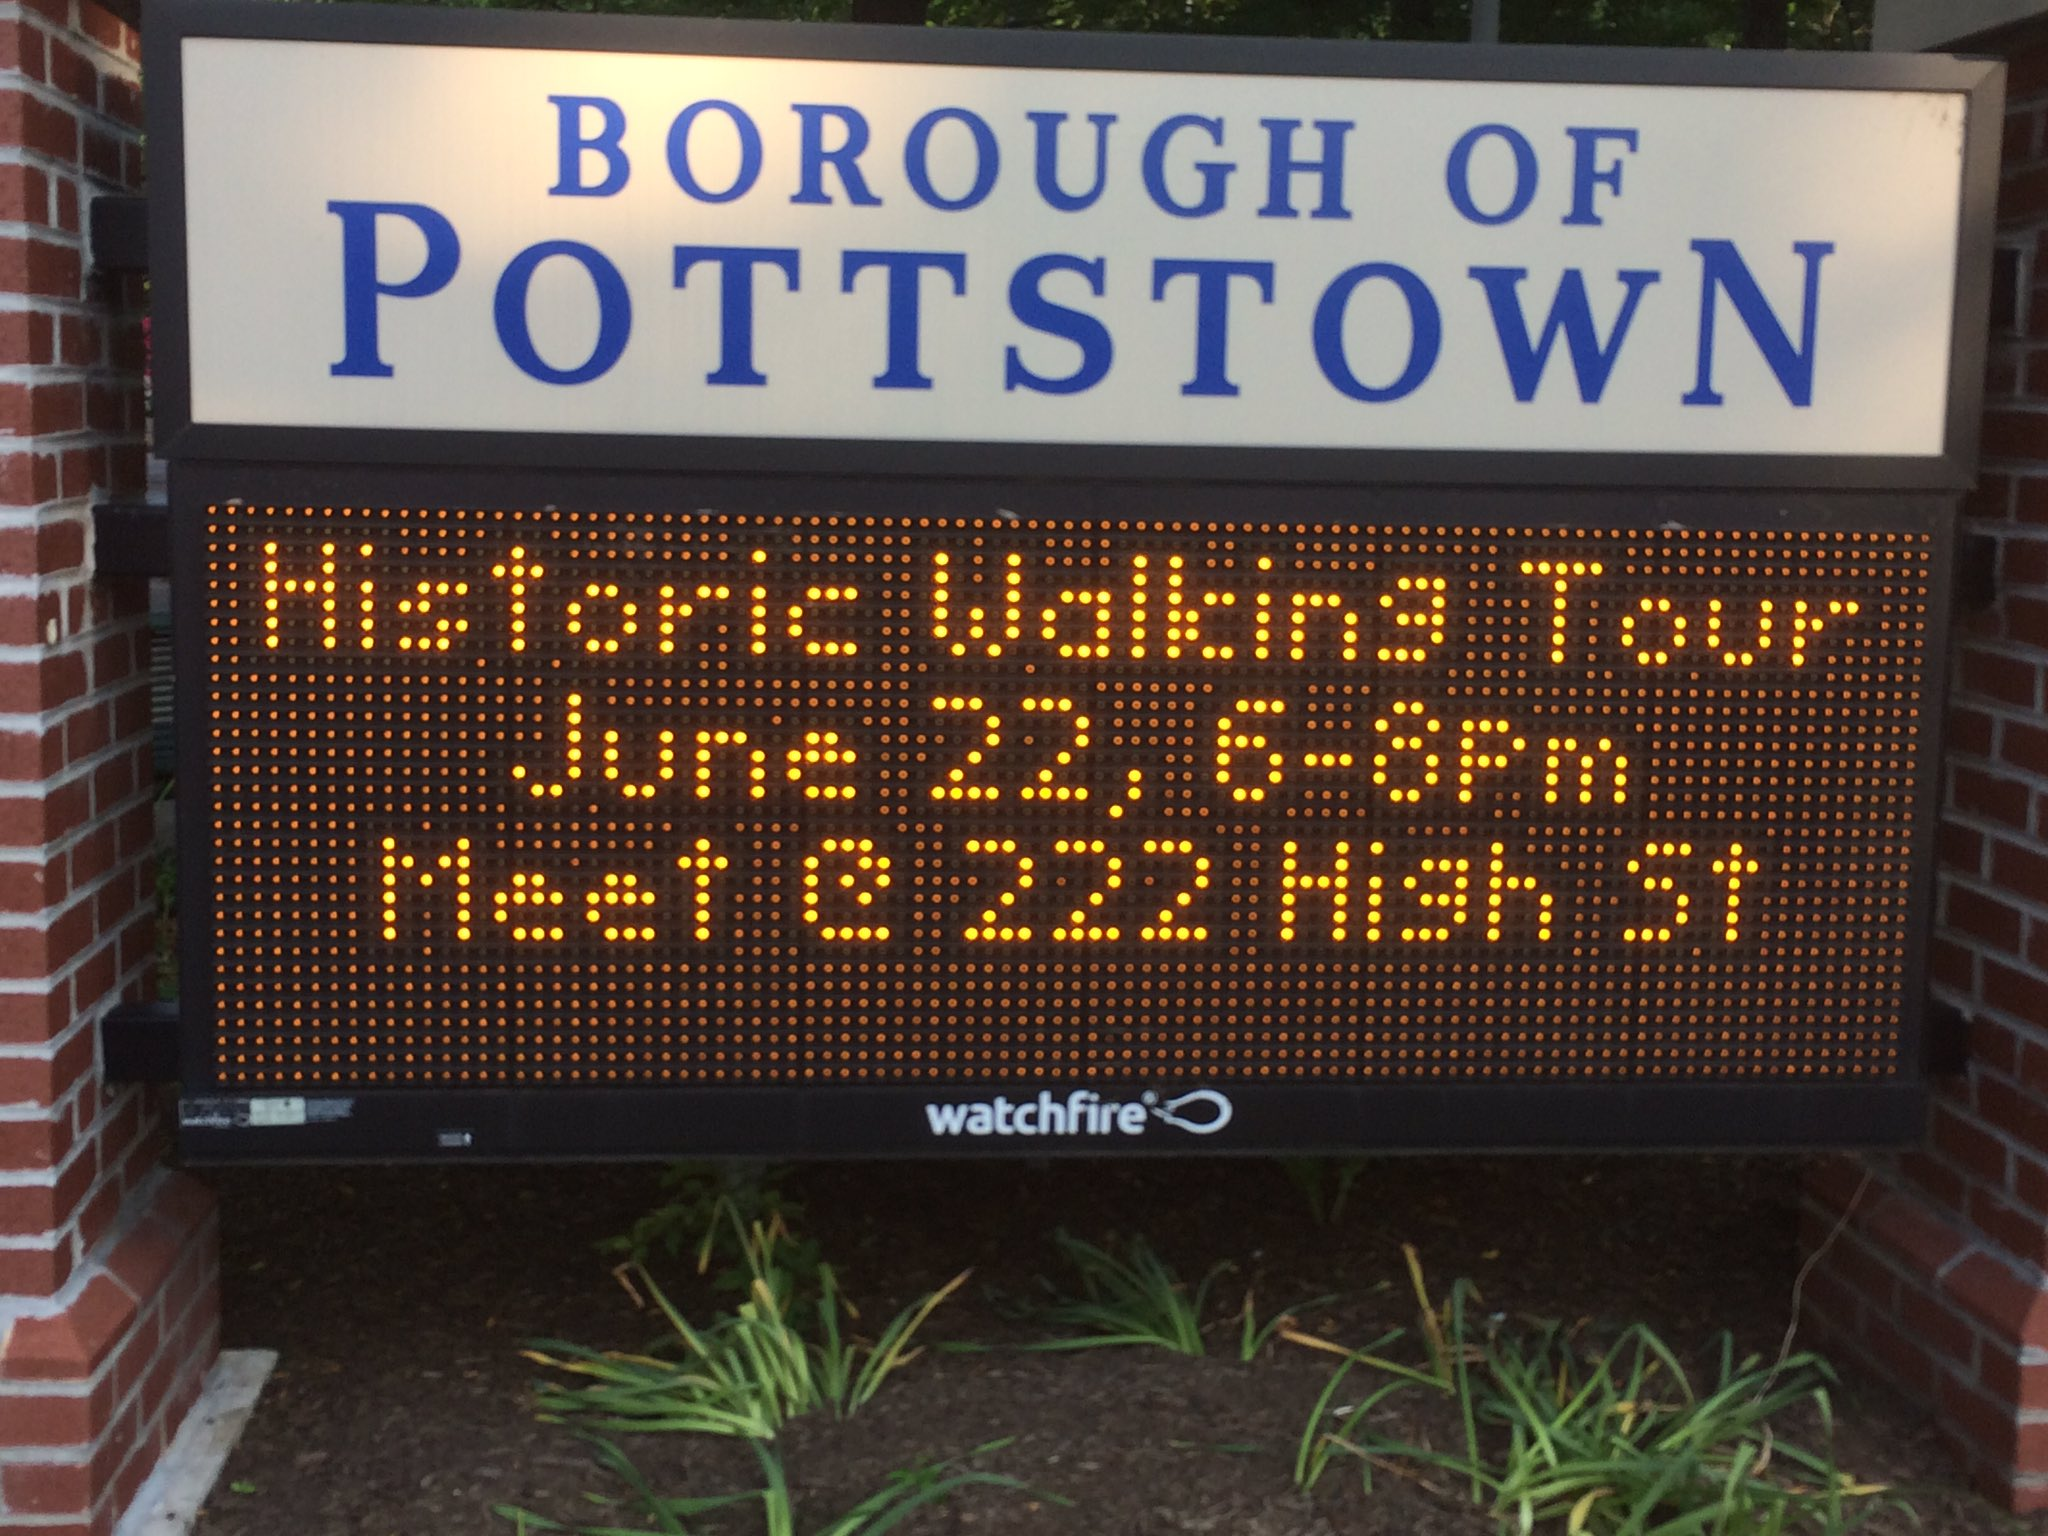 And don't miss out on this opportunity to learn more about the long history of @pottstownboro https://t.co/qAd5eGSS4m